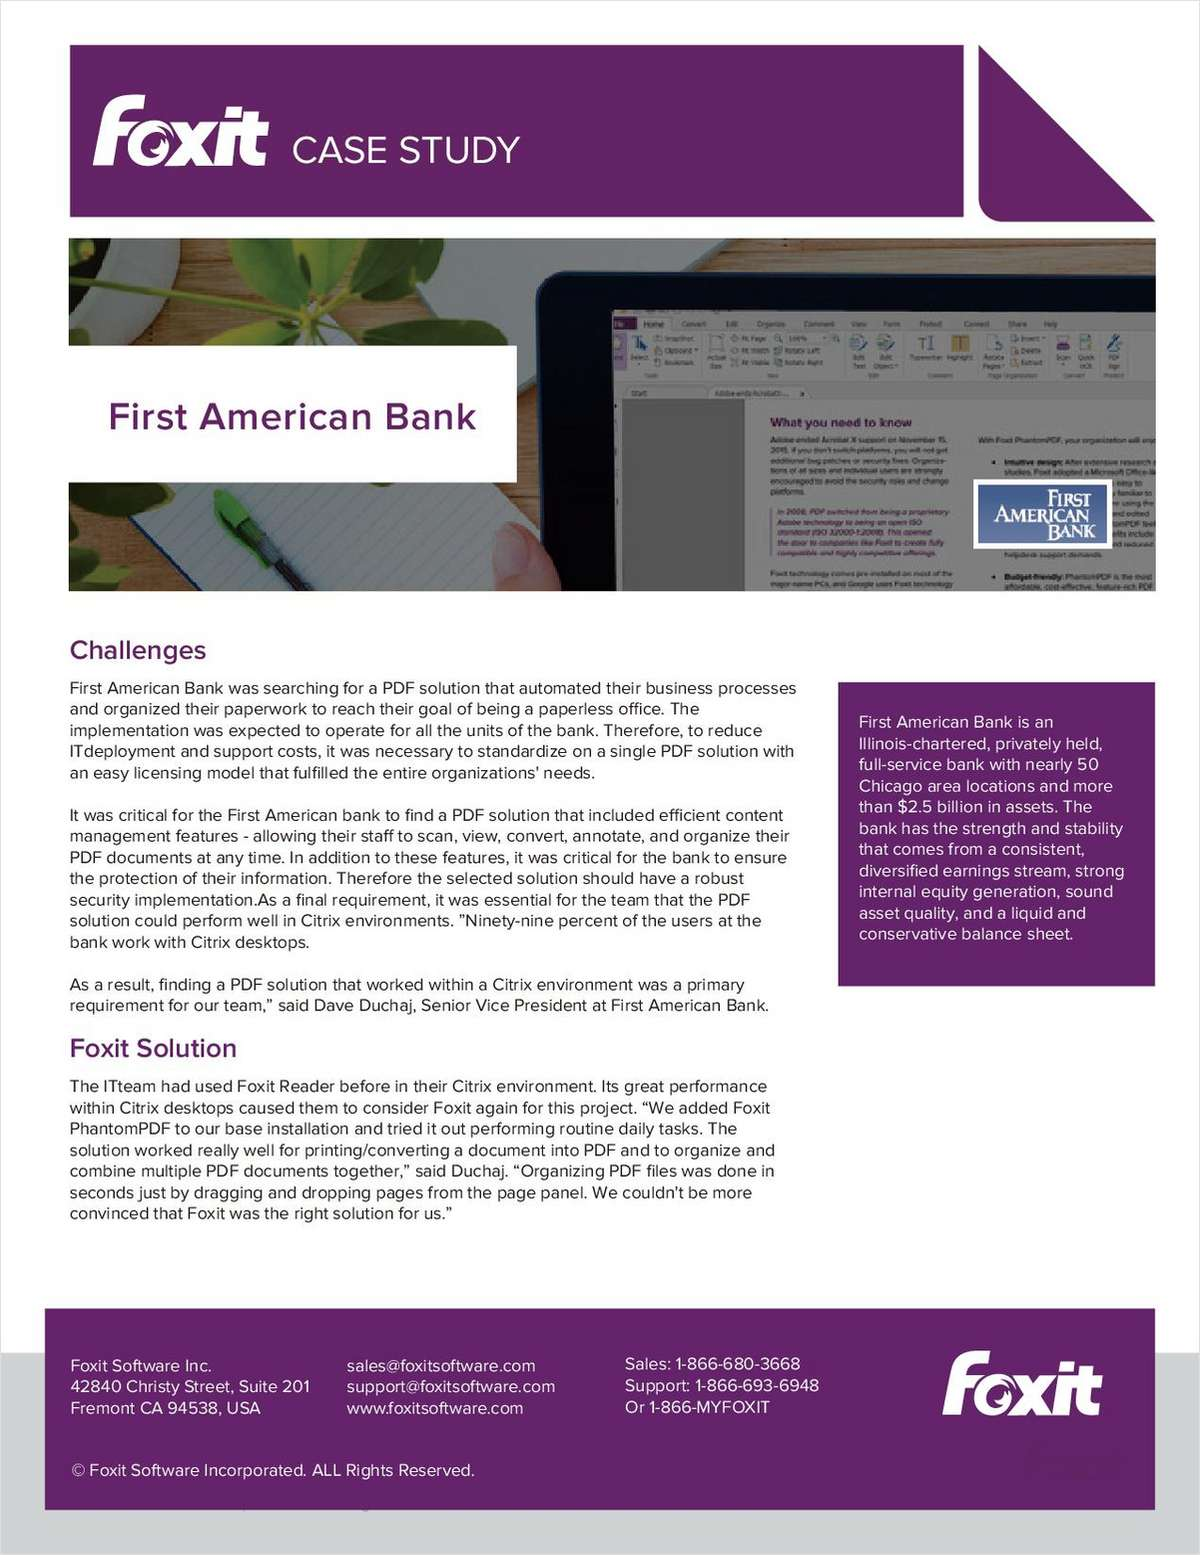 Foxit Case Study: First American Bank, Free Foxit